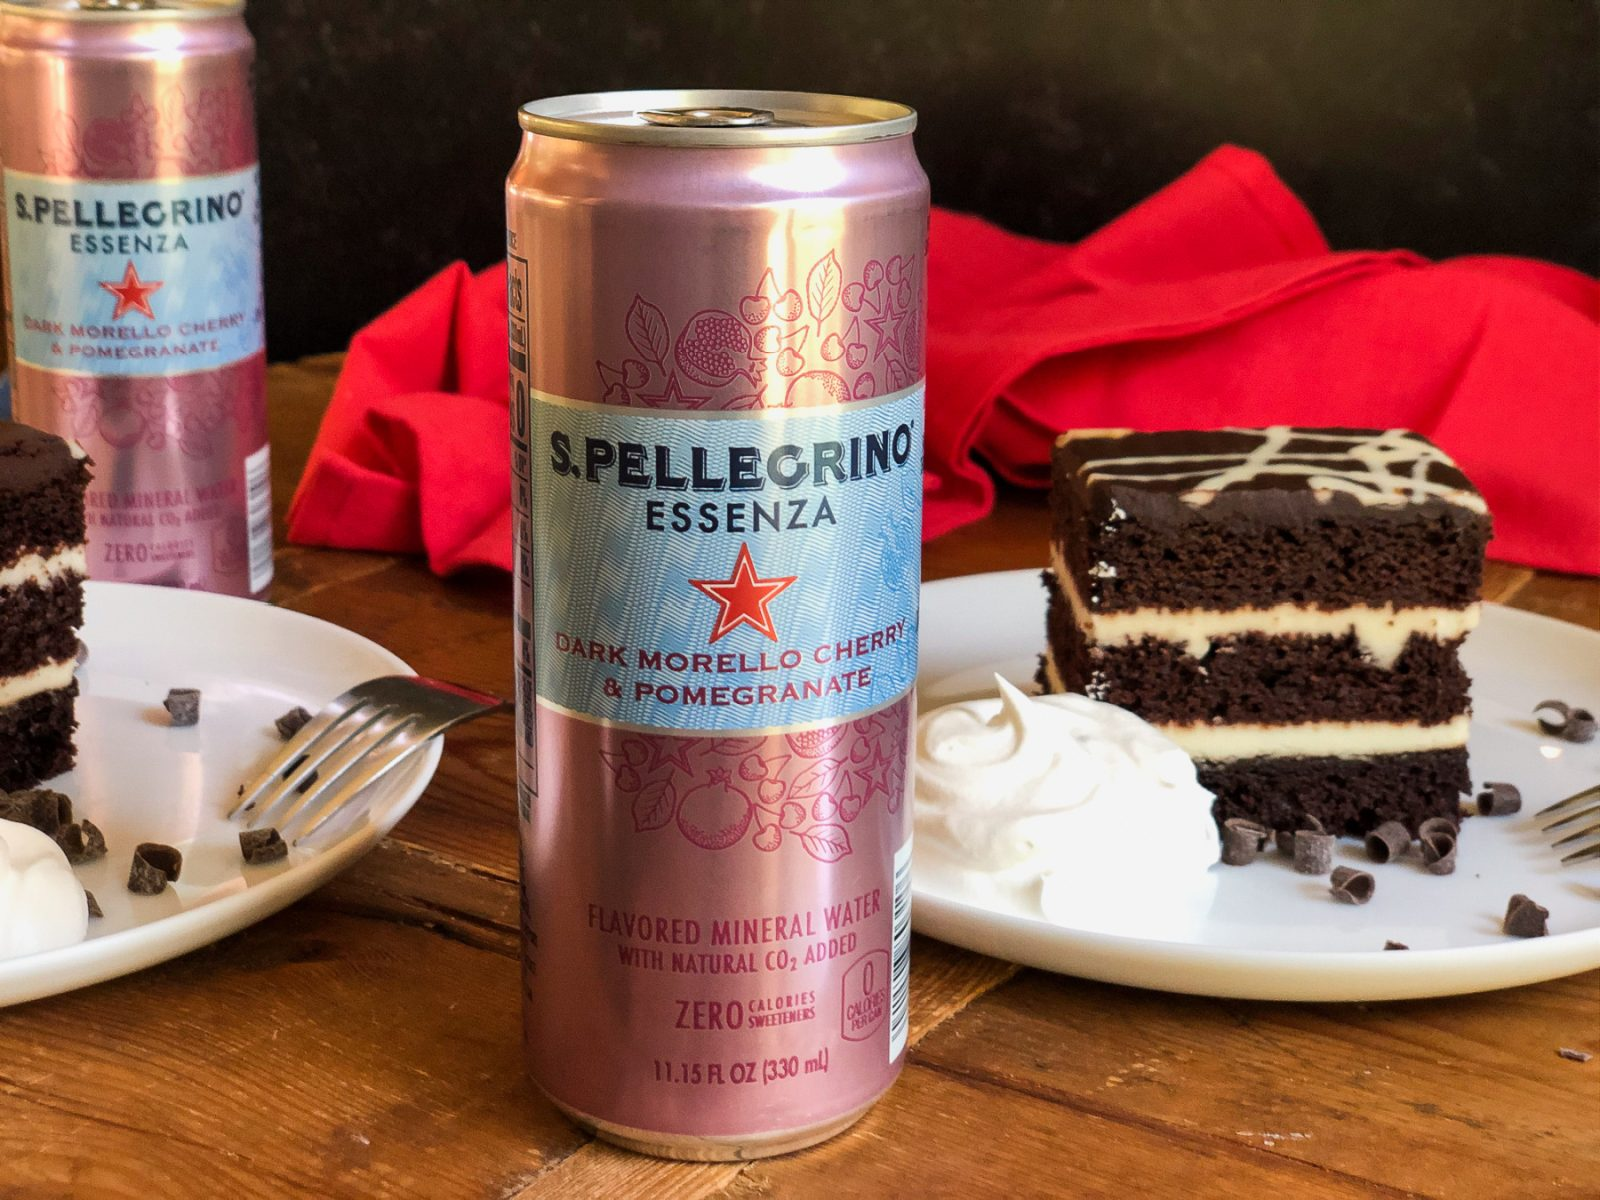 Add A Twist Of Flavor To Your Day With S.Pellegrino Essenza - Available At Publix on I Heart Publix 2